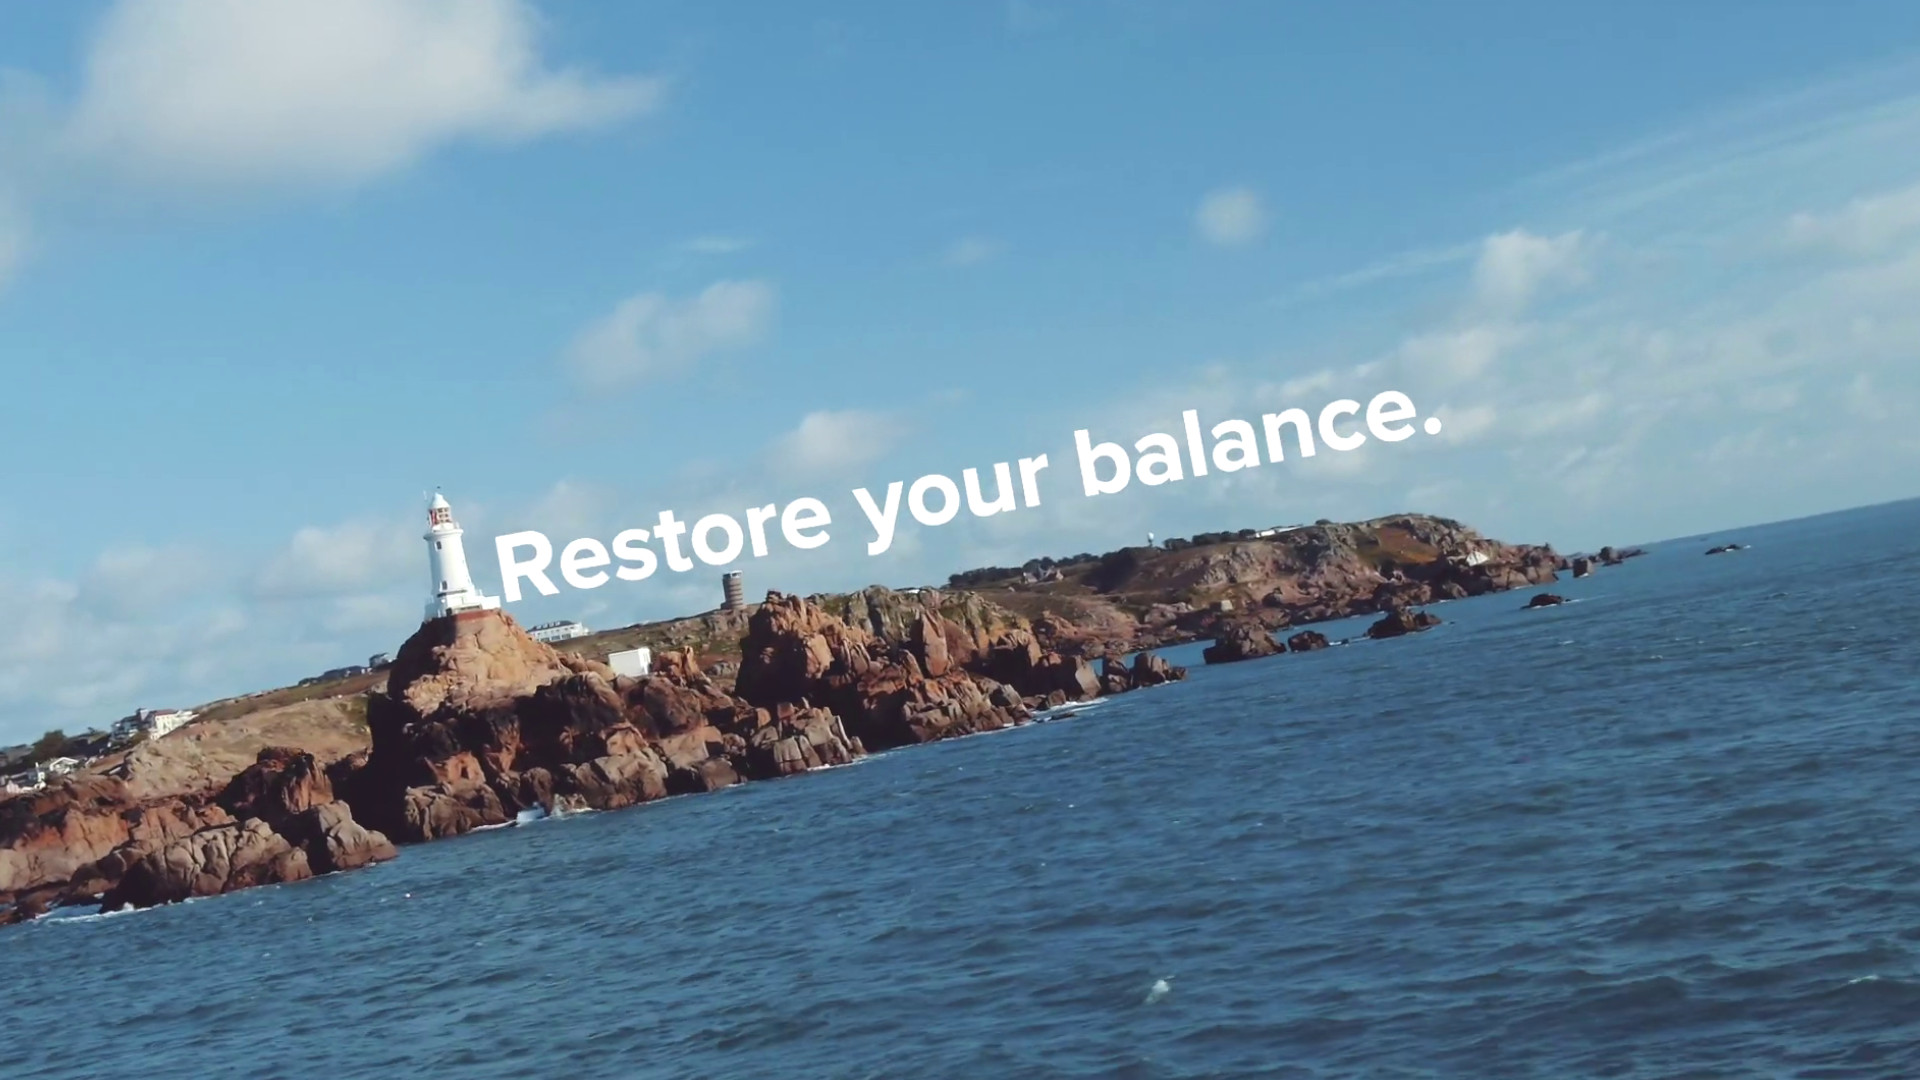 Restore Your Balance Campaign by Visit Jersey, UK